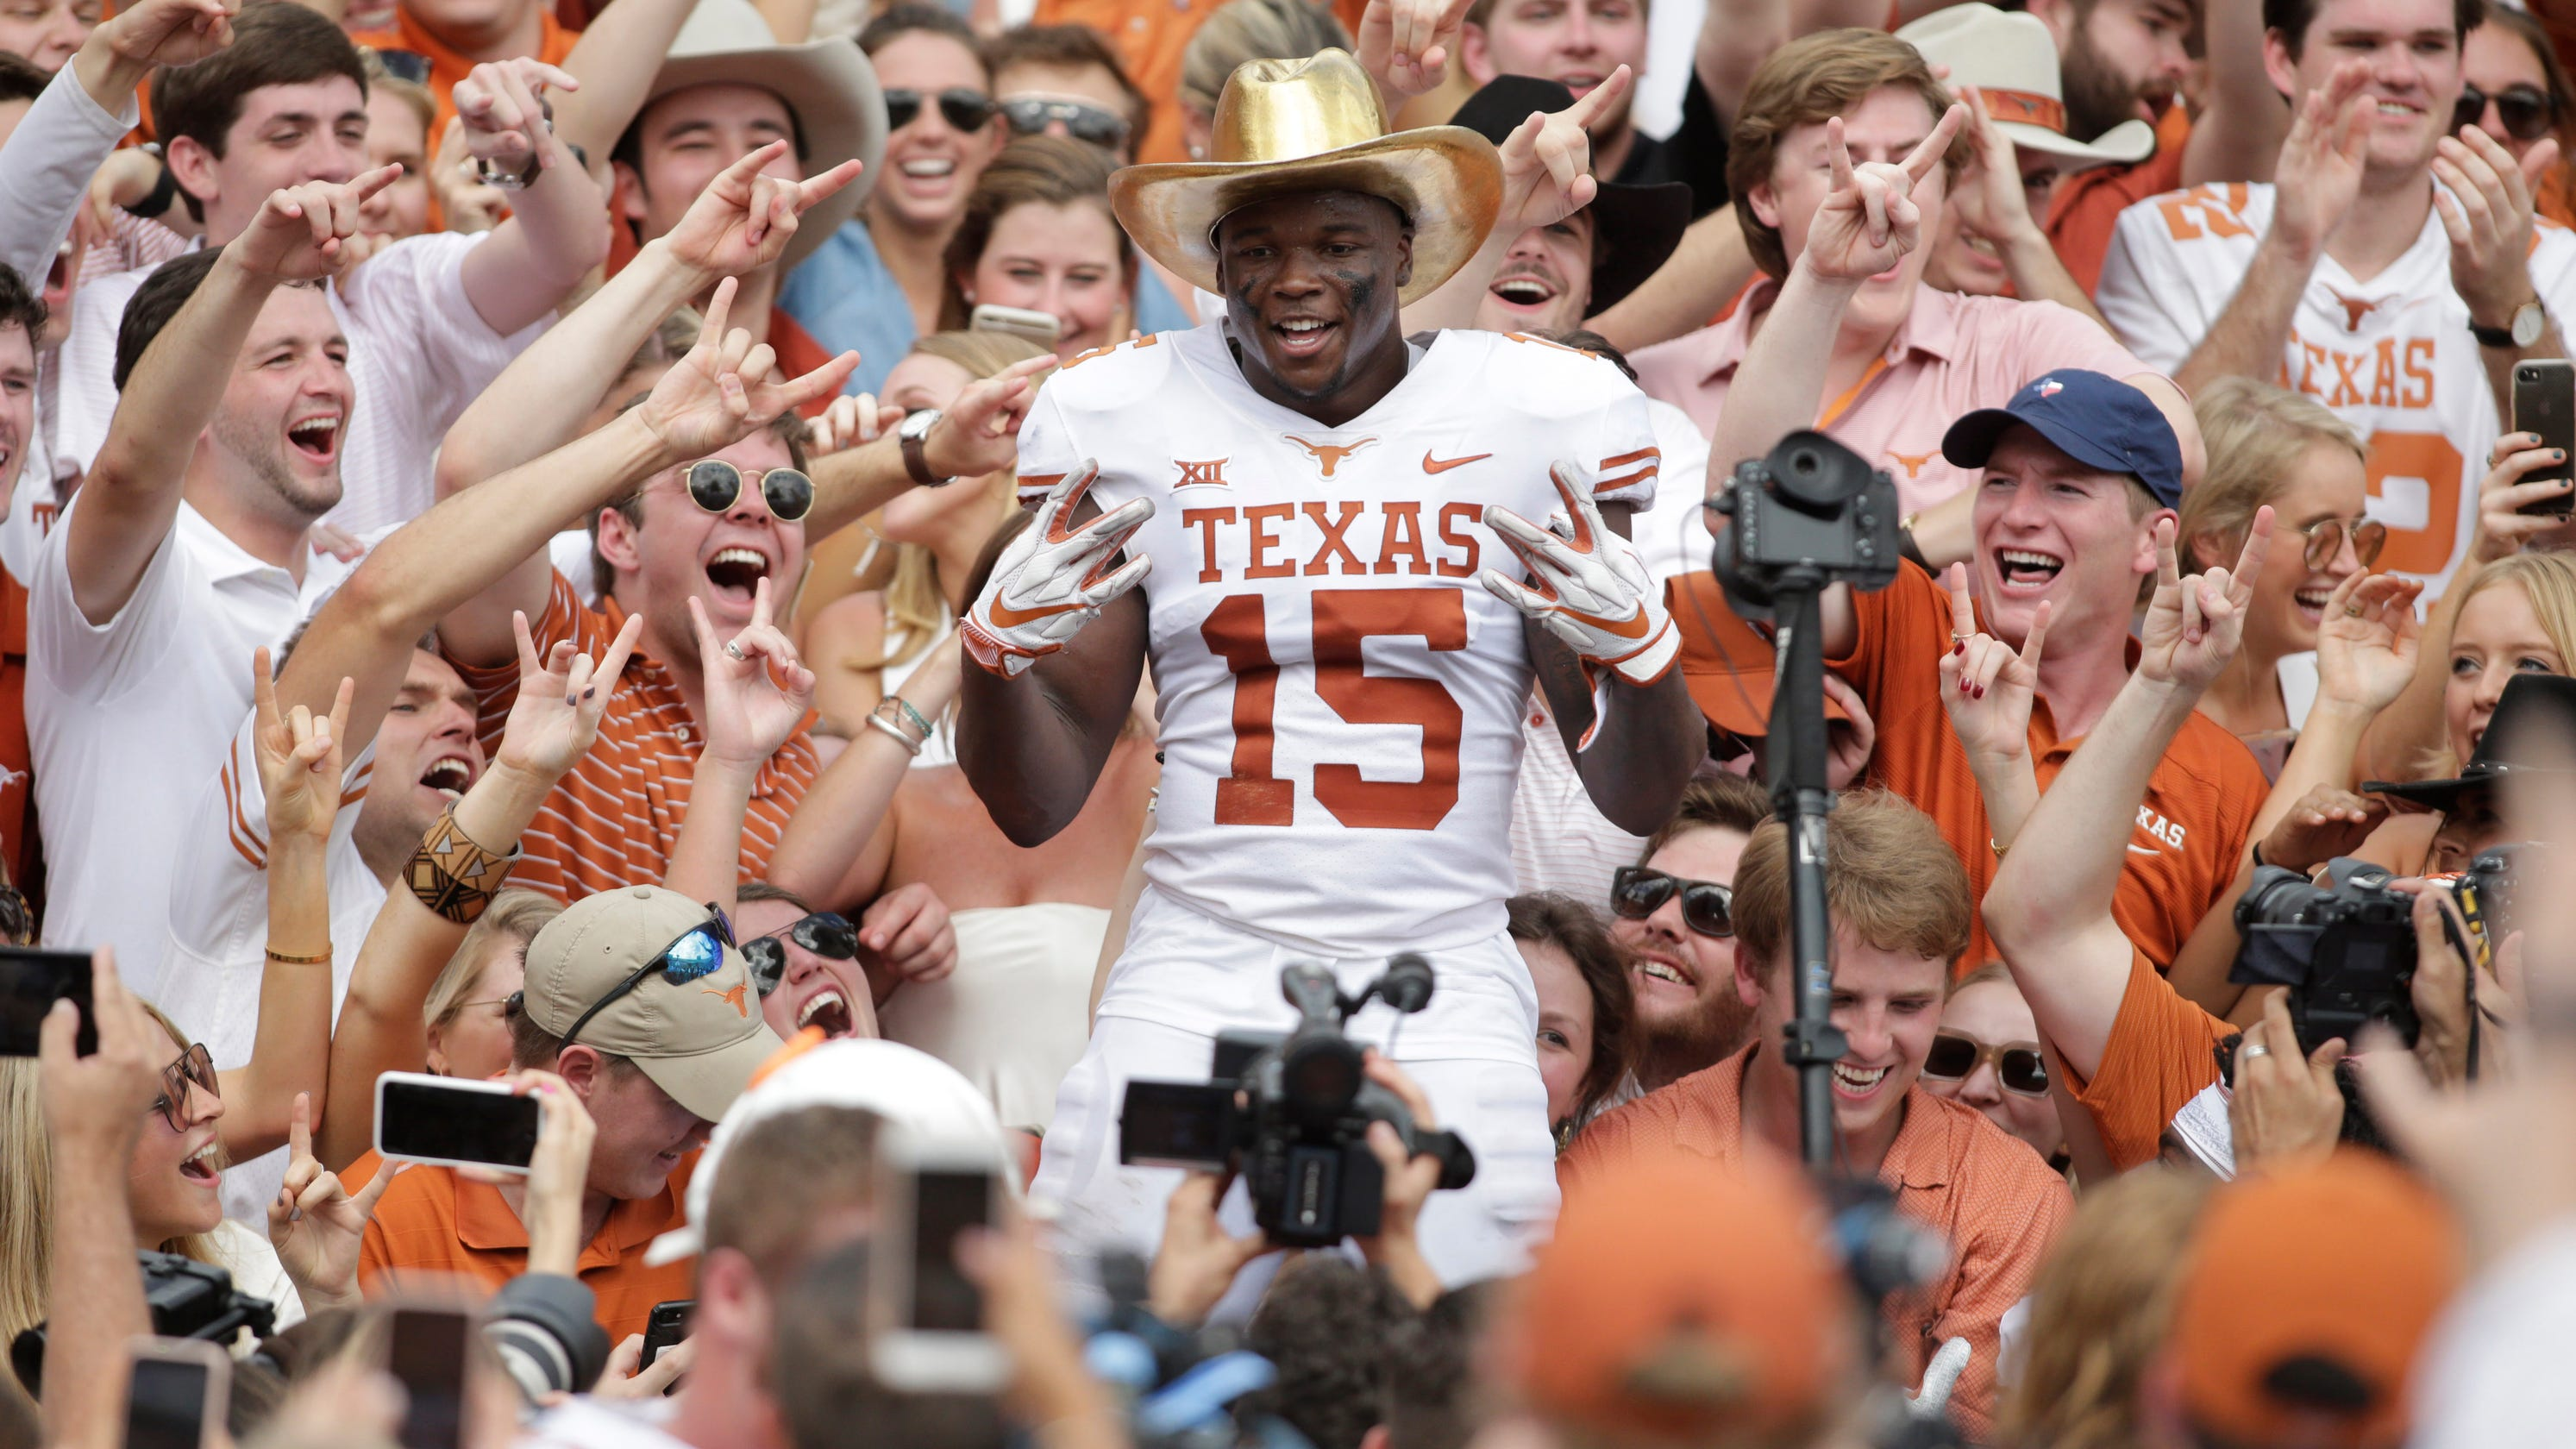 Texas takes big step forward with defeat of Oklahoma that also is big win  for Big 12 cad558253